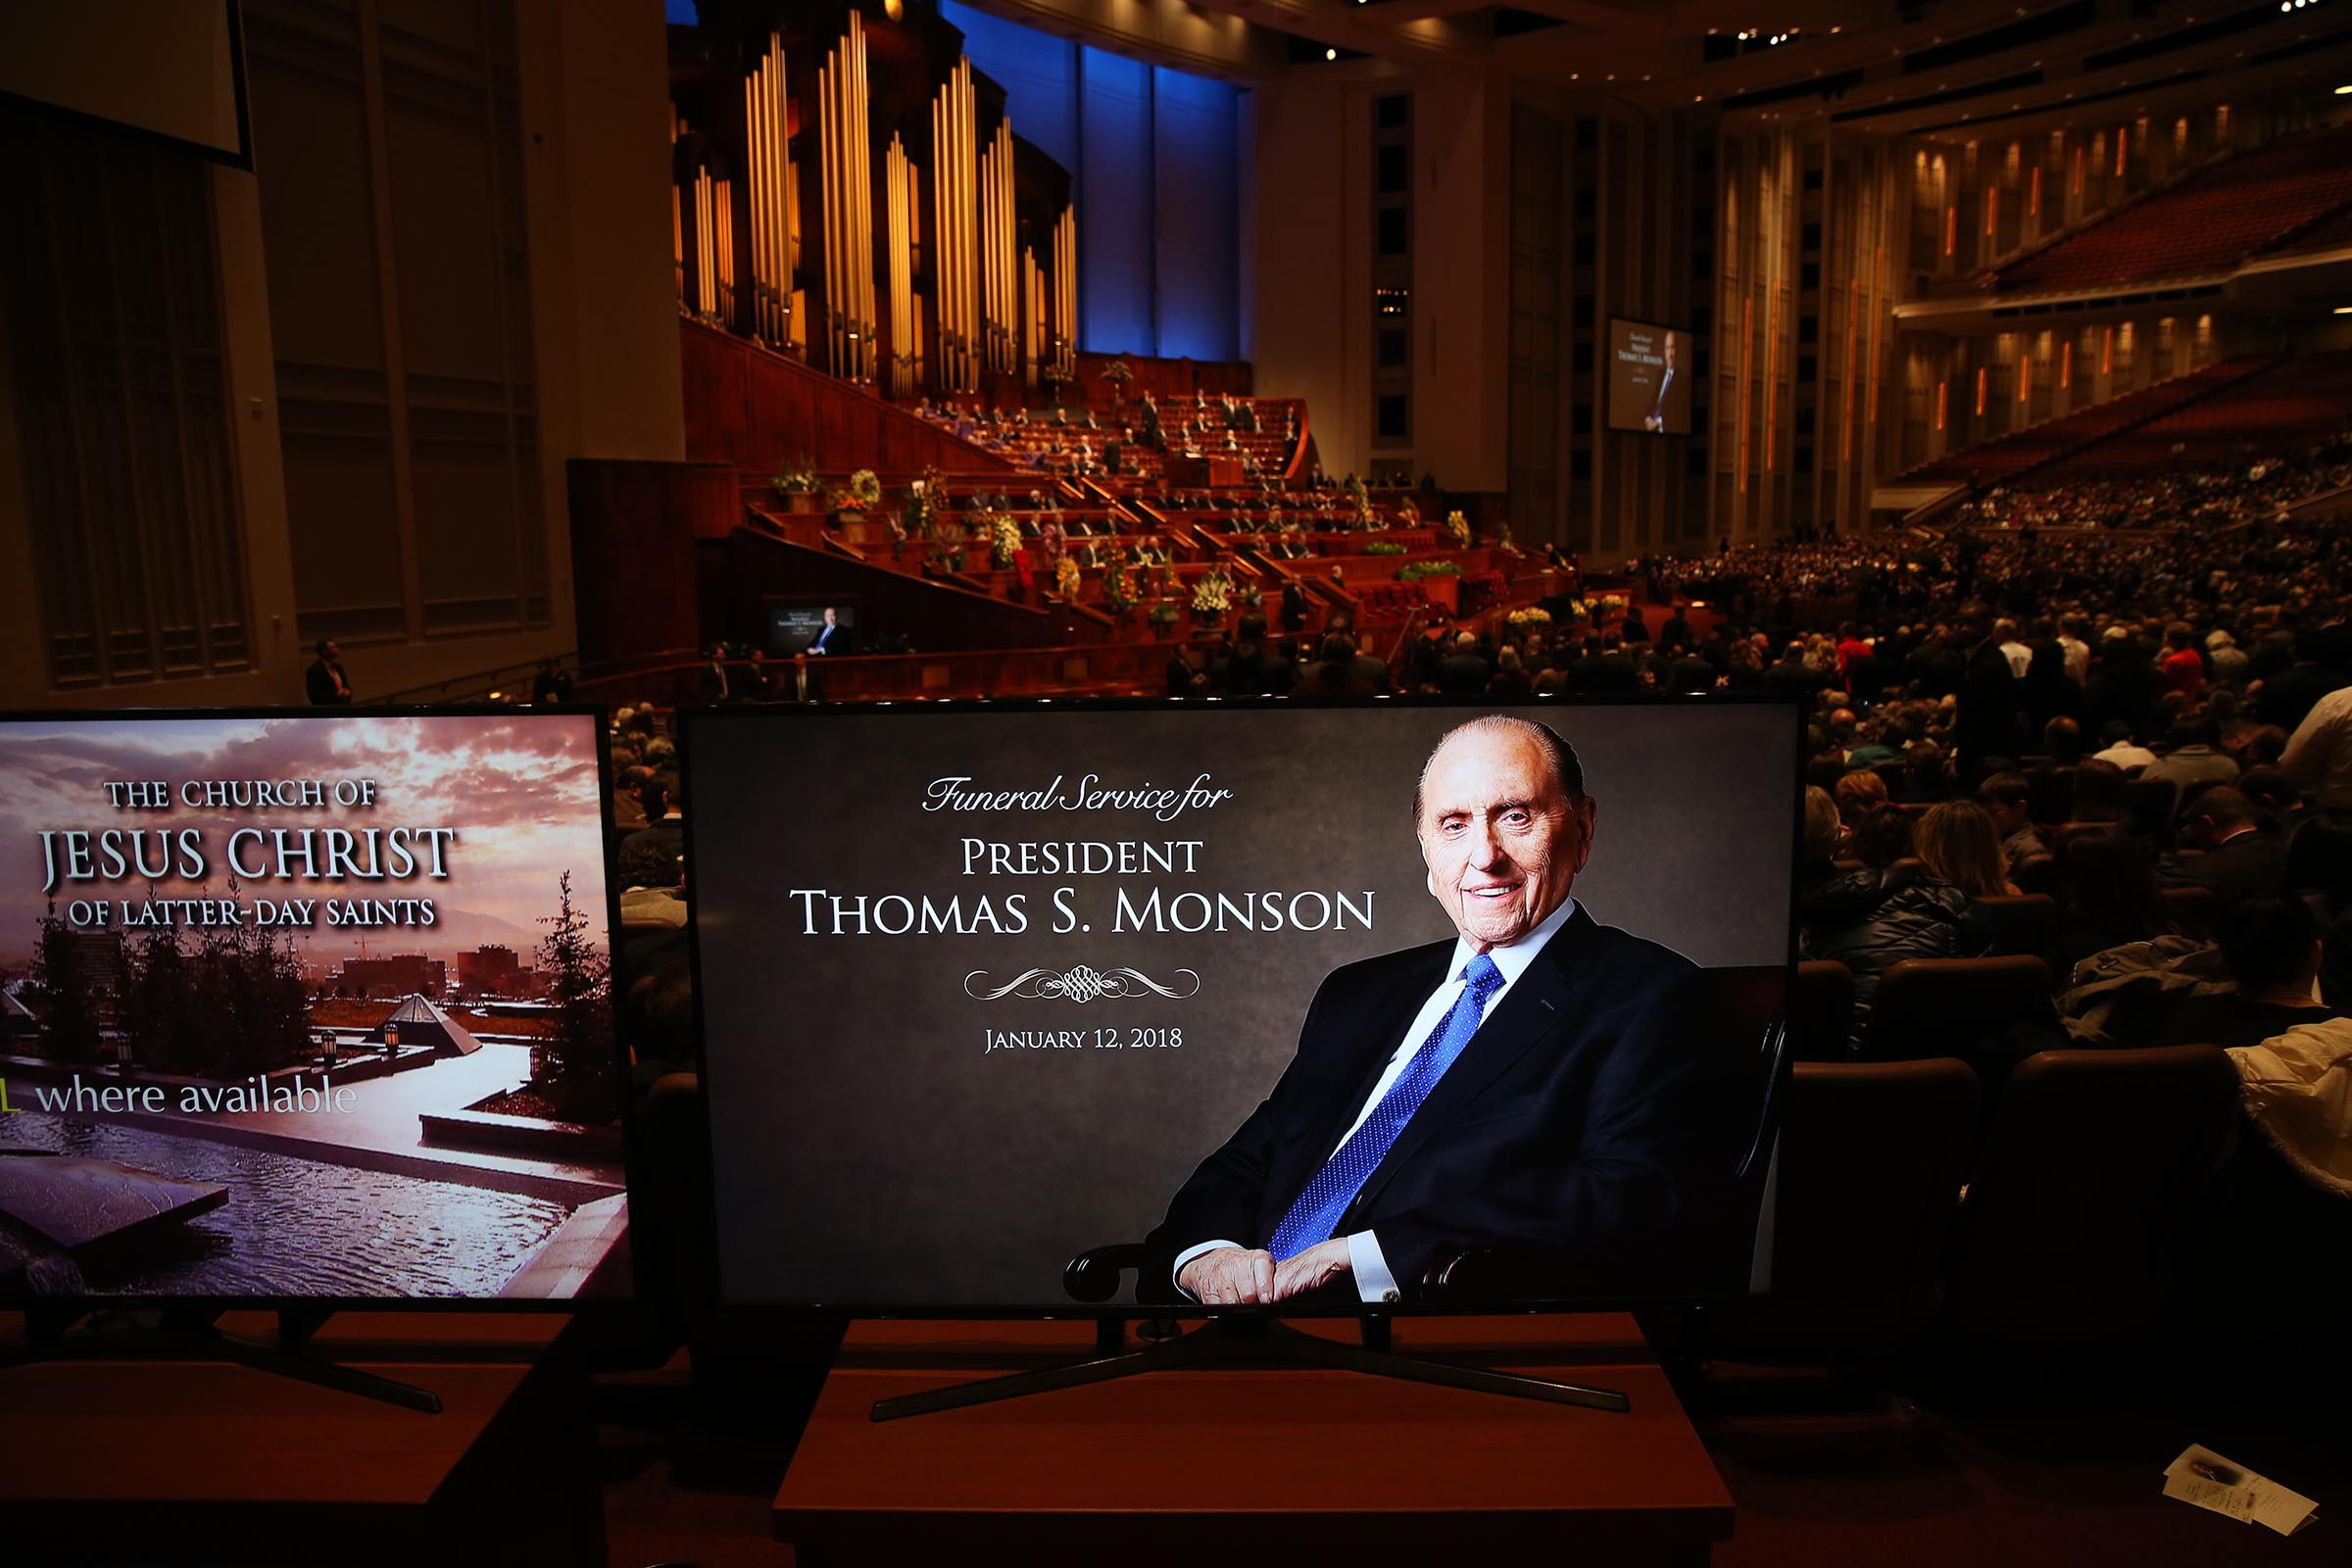 Mourners wait for Church President Thomas S. Monson's funeral to begin at the Conference Center in Salt Lake City on Friday, Jan. 12, 2018.